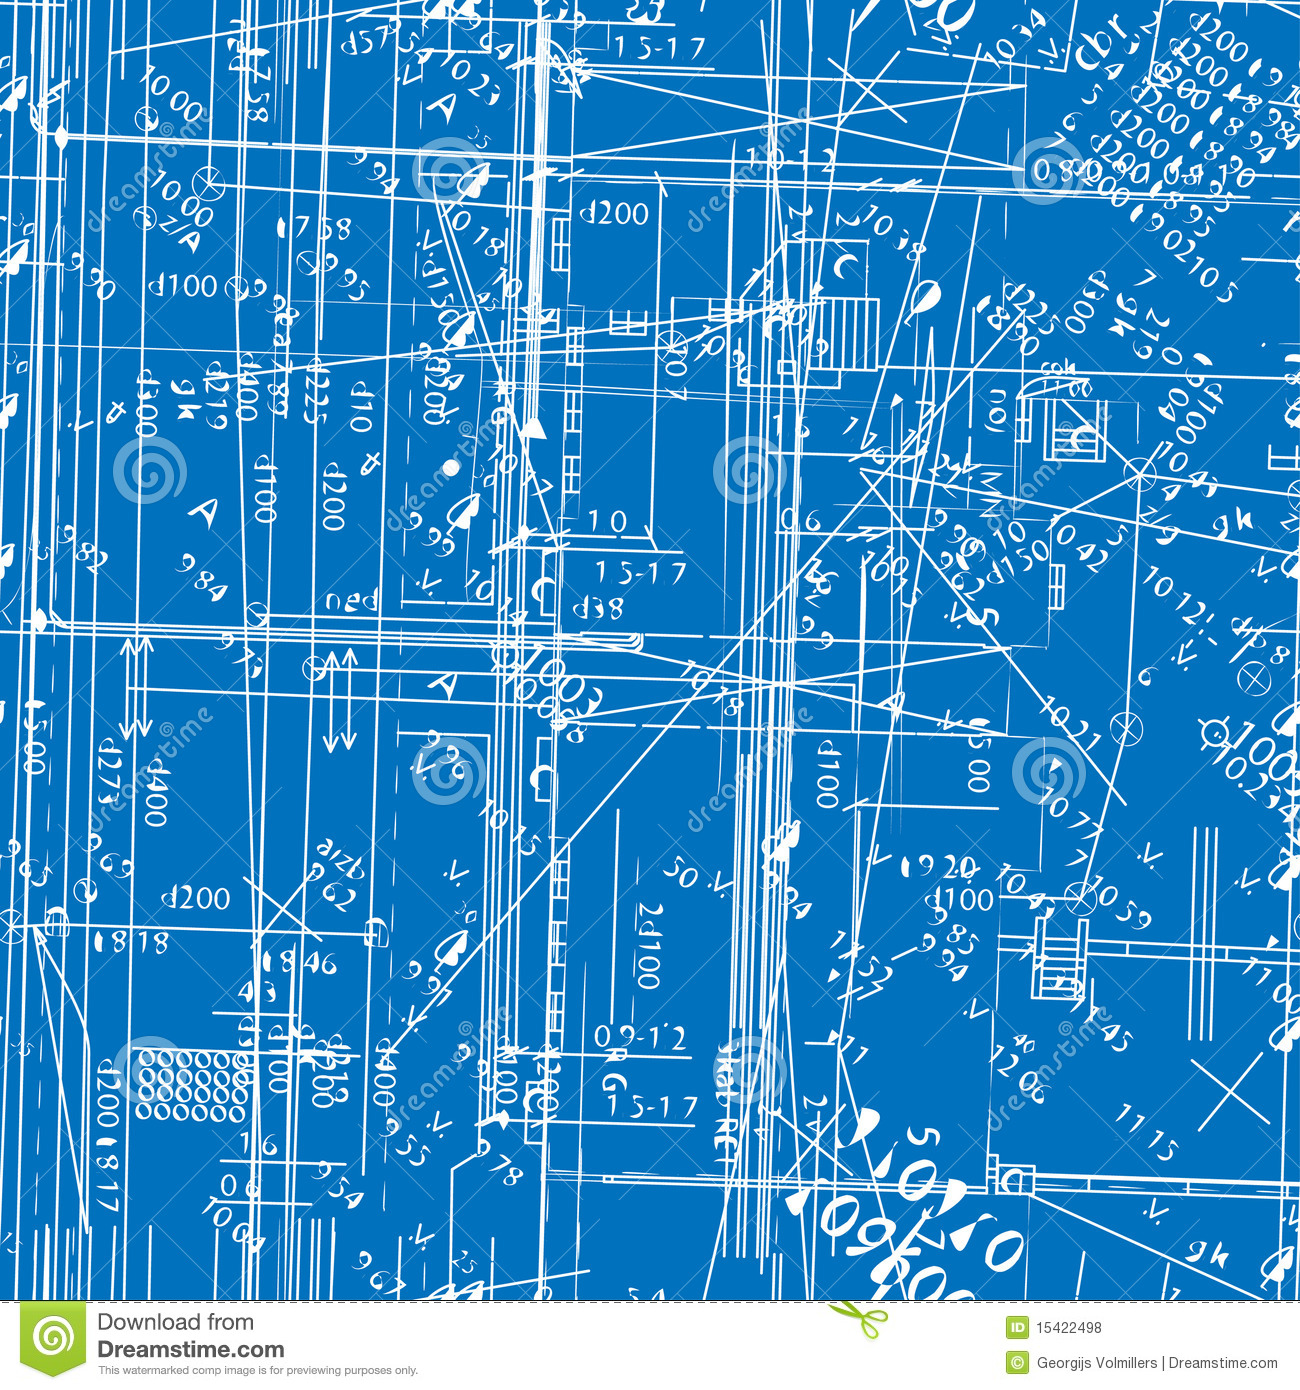 Seamless simulating engineering blueprint stock vector seamless simulating engineering blueprint malvernweather